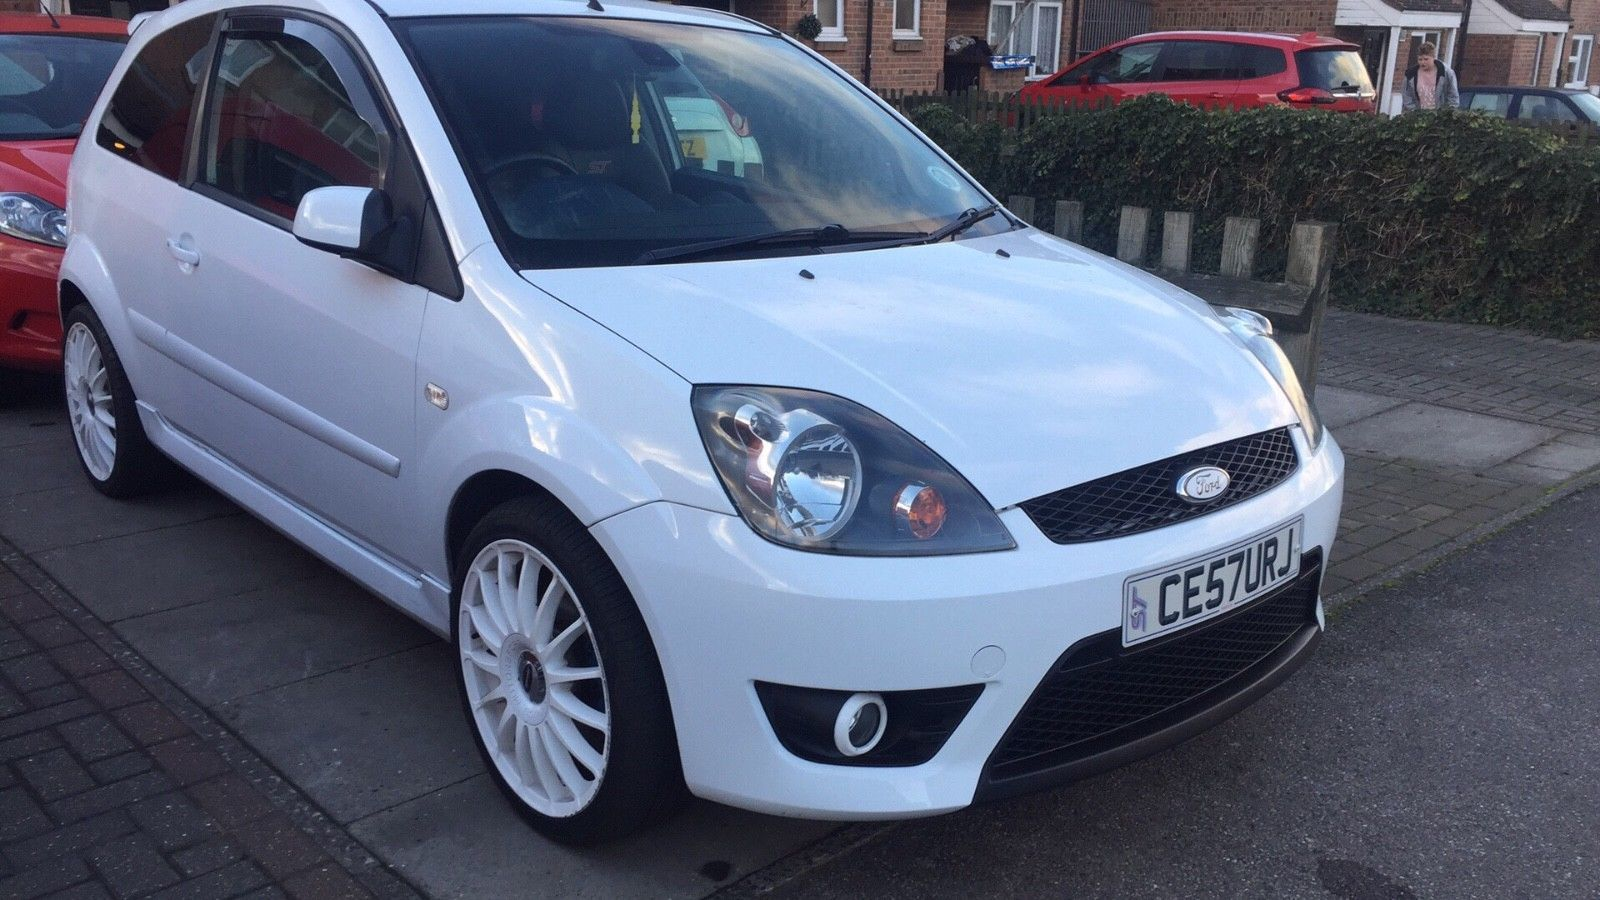 Check Out This Fast Ford 2007 57 Plate Ford Fiesta St White Top Of The Range With Mountune Extras Ford Fiesta St Fiesta St Ford Fiesta